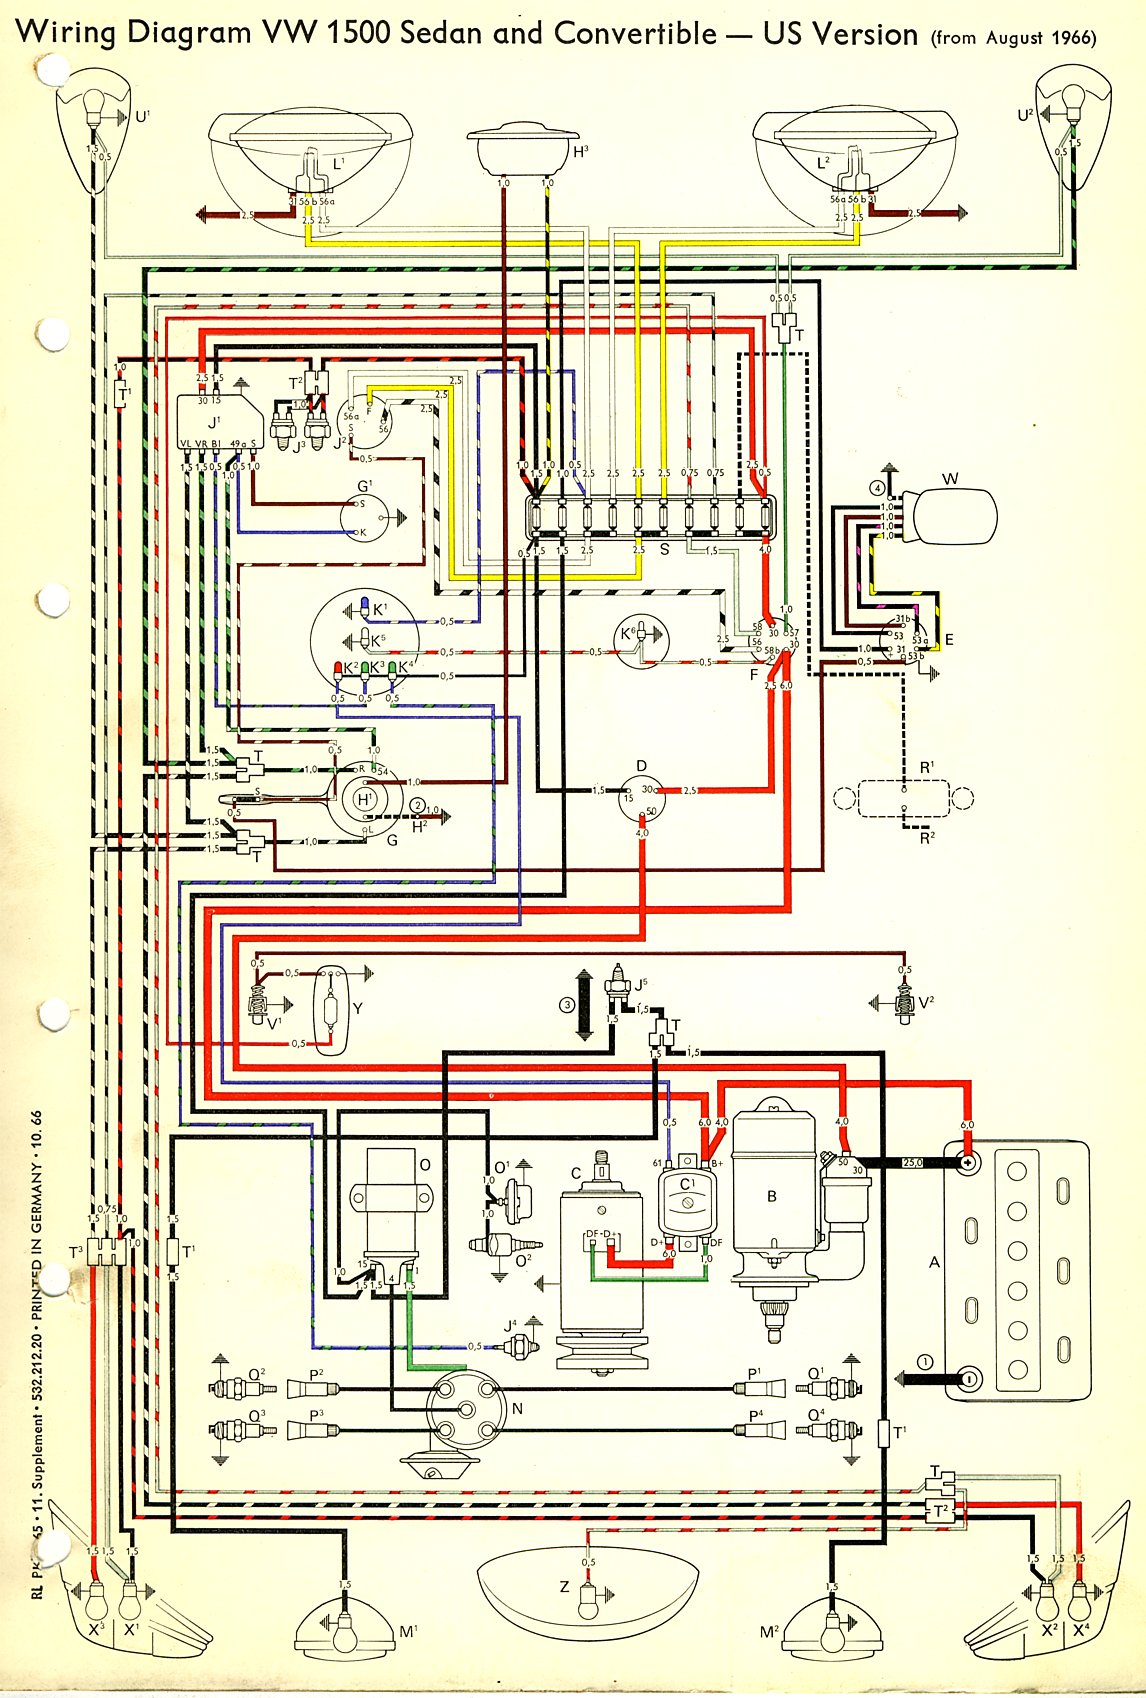 bug_67_USA thesamba com type 1 wiring diagrams 67 VW Beetle Wiring Diagram at bayanpartner.co